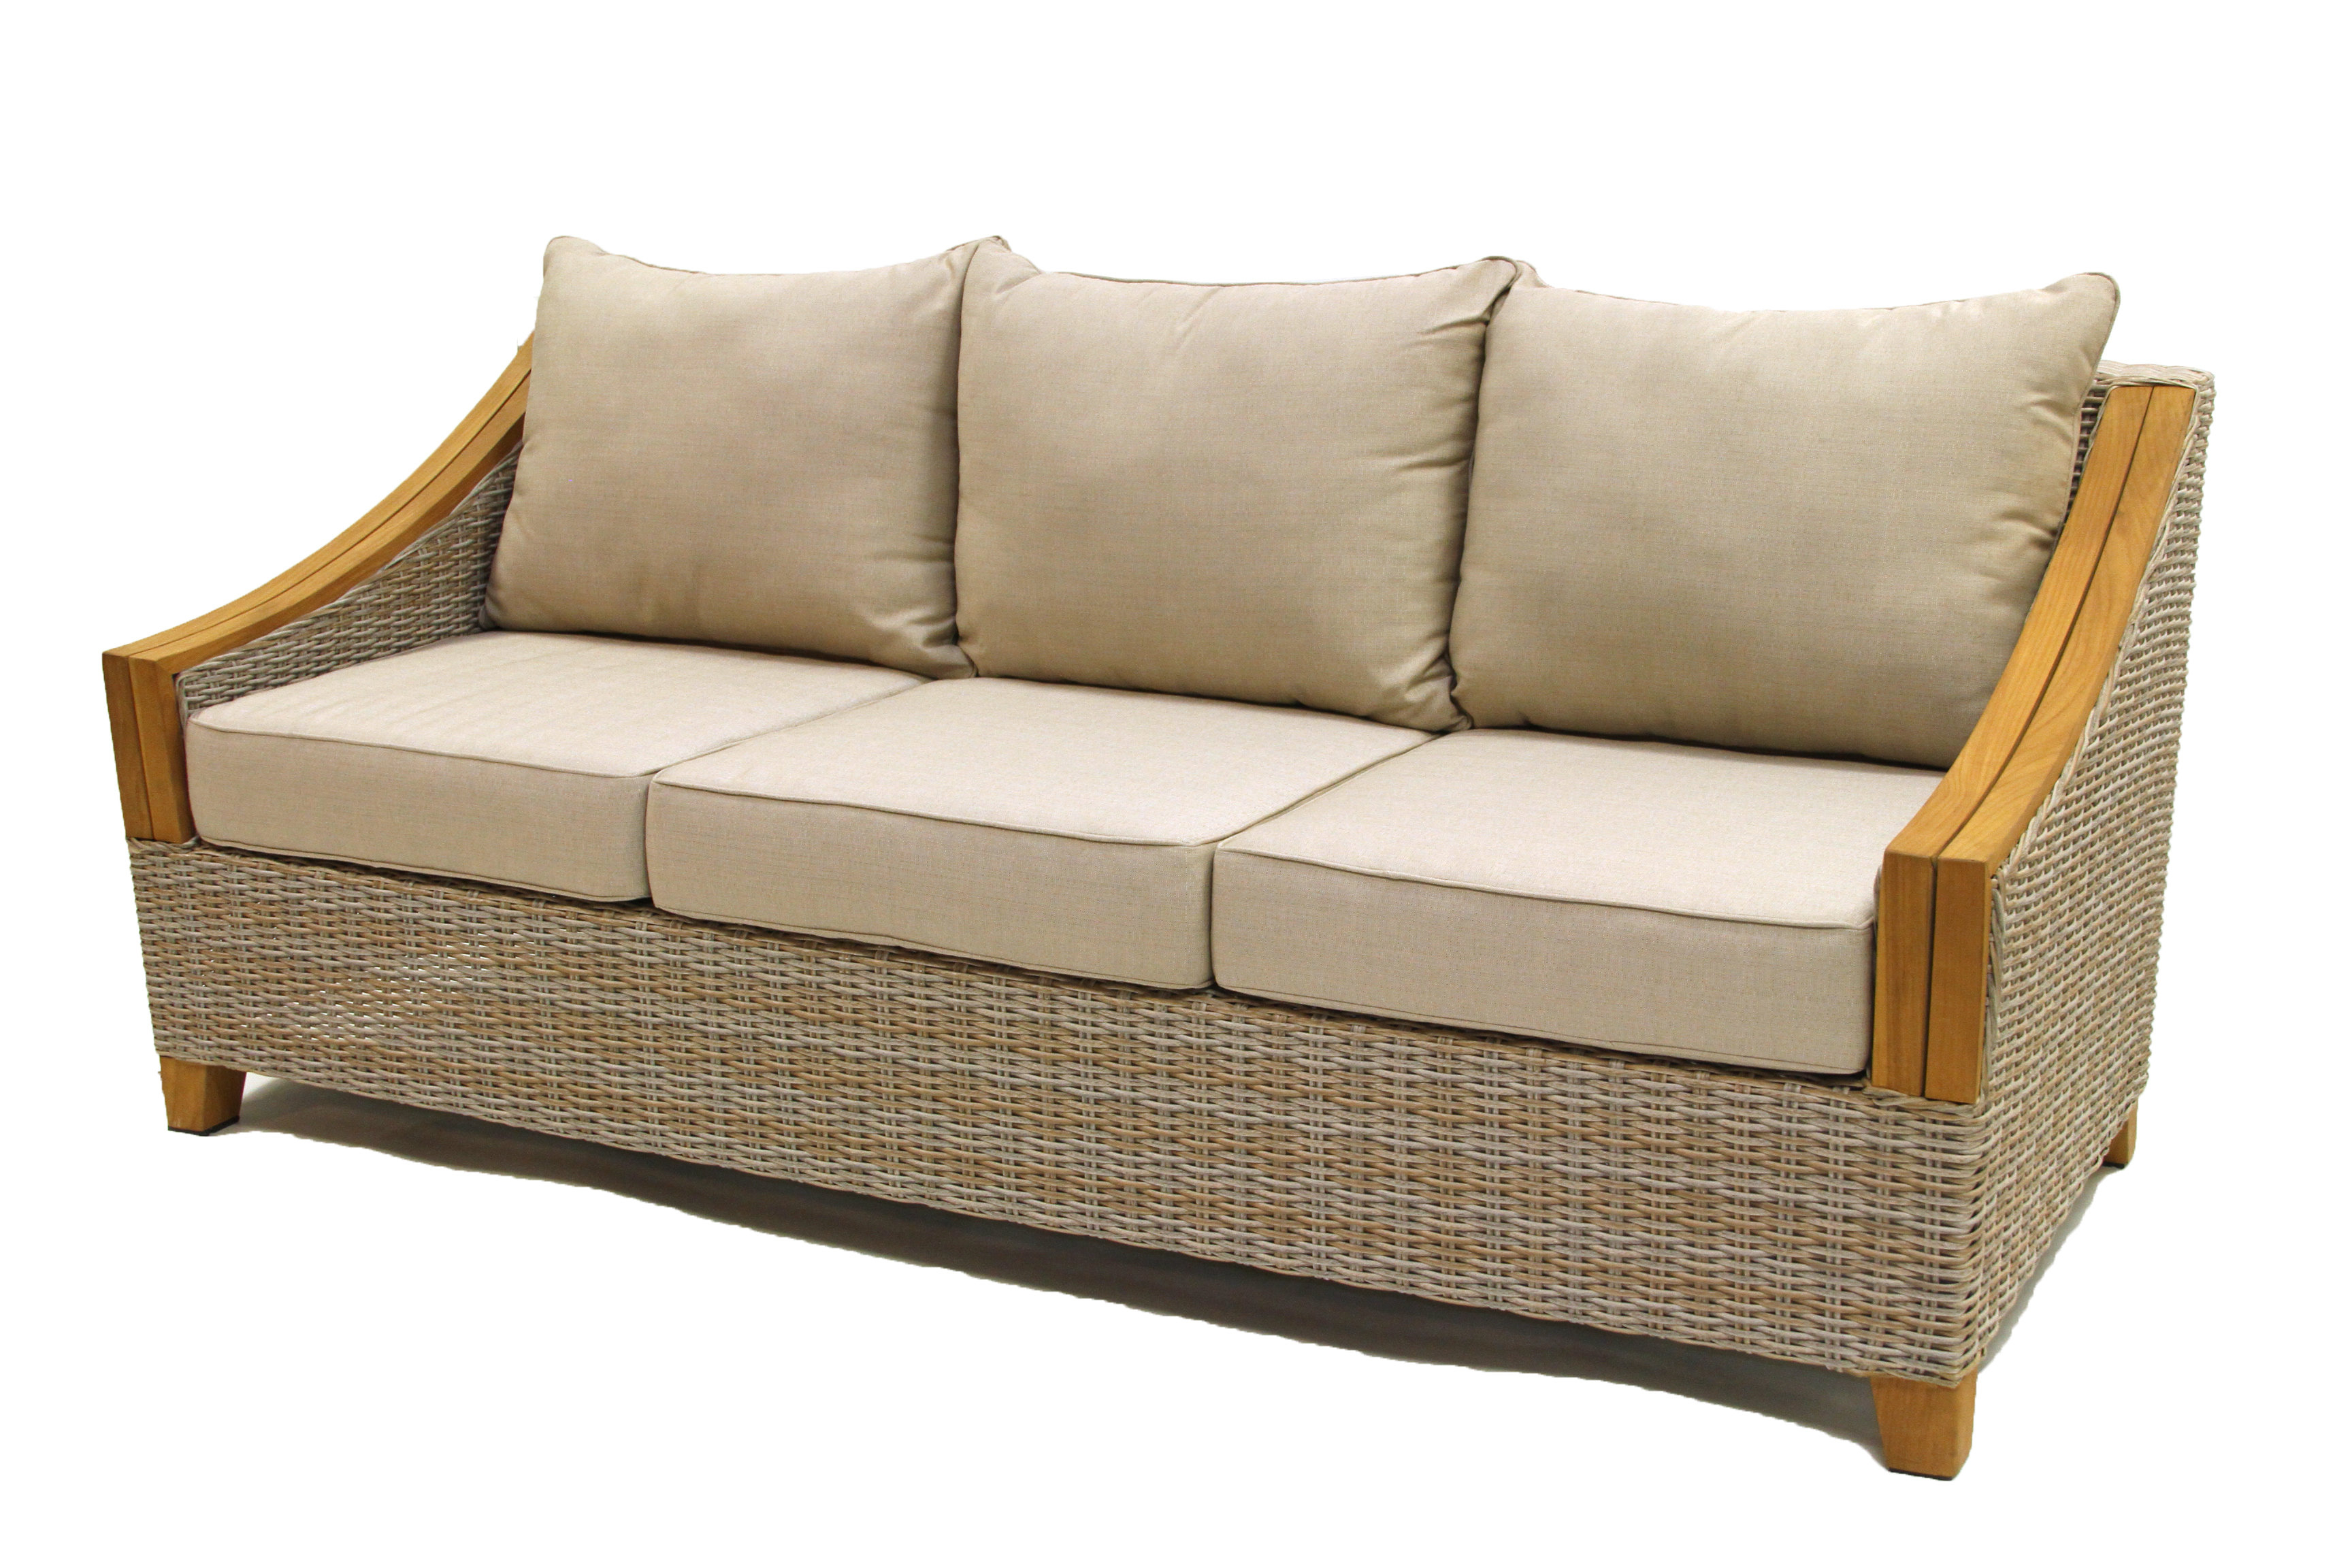 Summerton Teak Loveseats With Cushions With Most Up To Date Kincaid Teak Patio Sofa With Sunbrella Cushions (View 17 of 20)